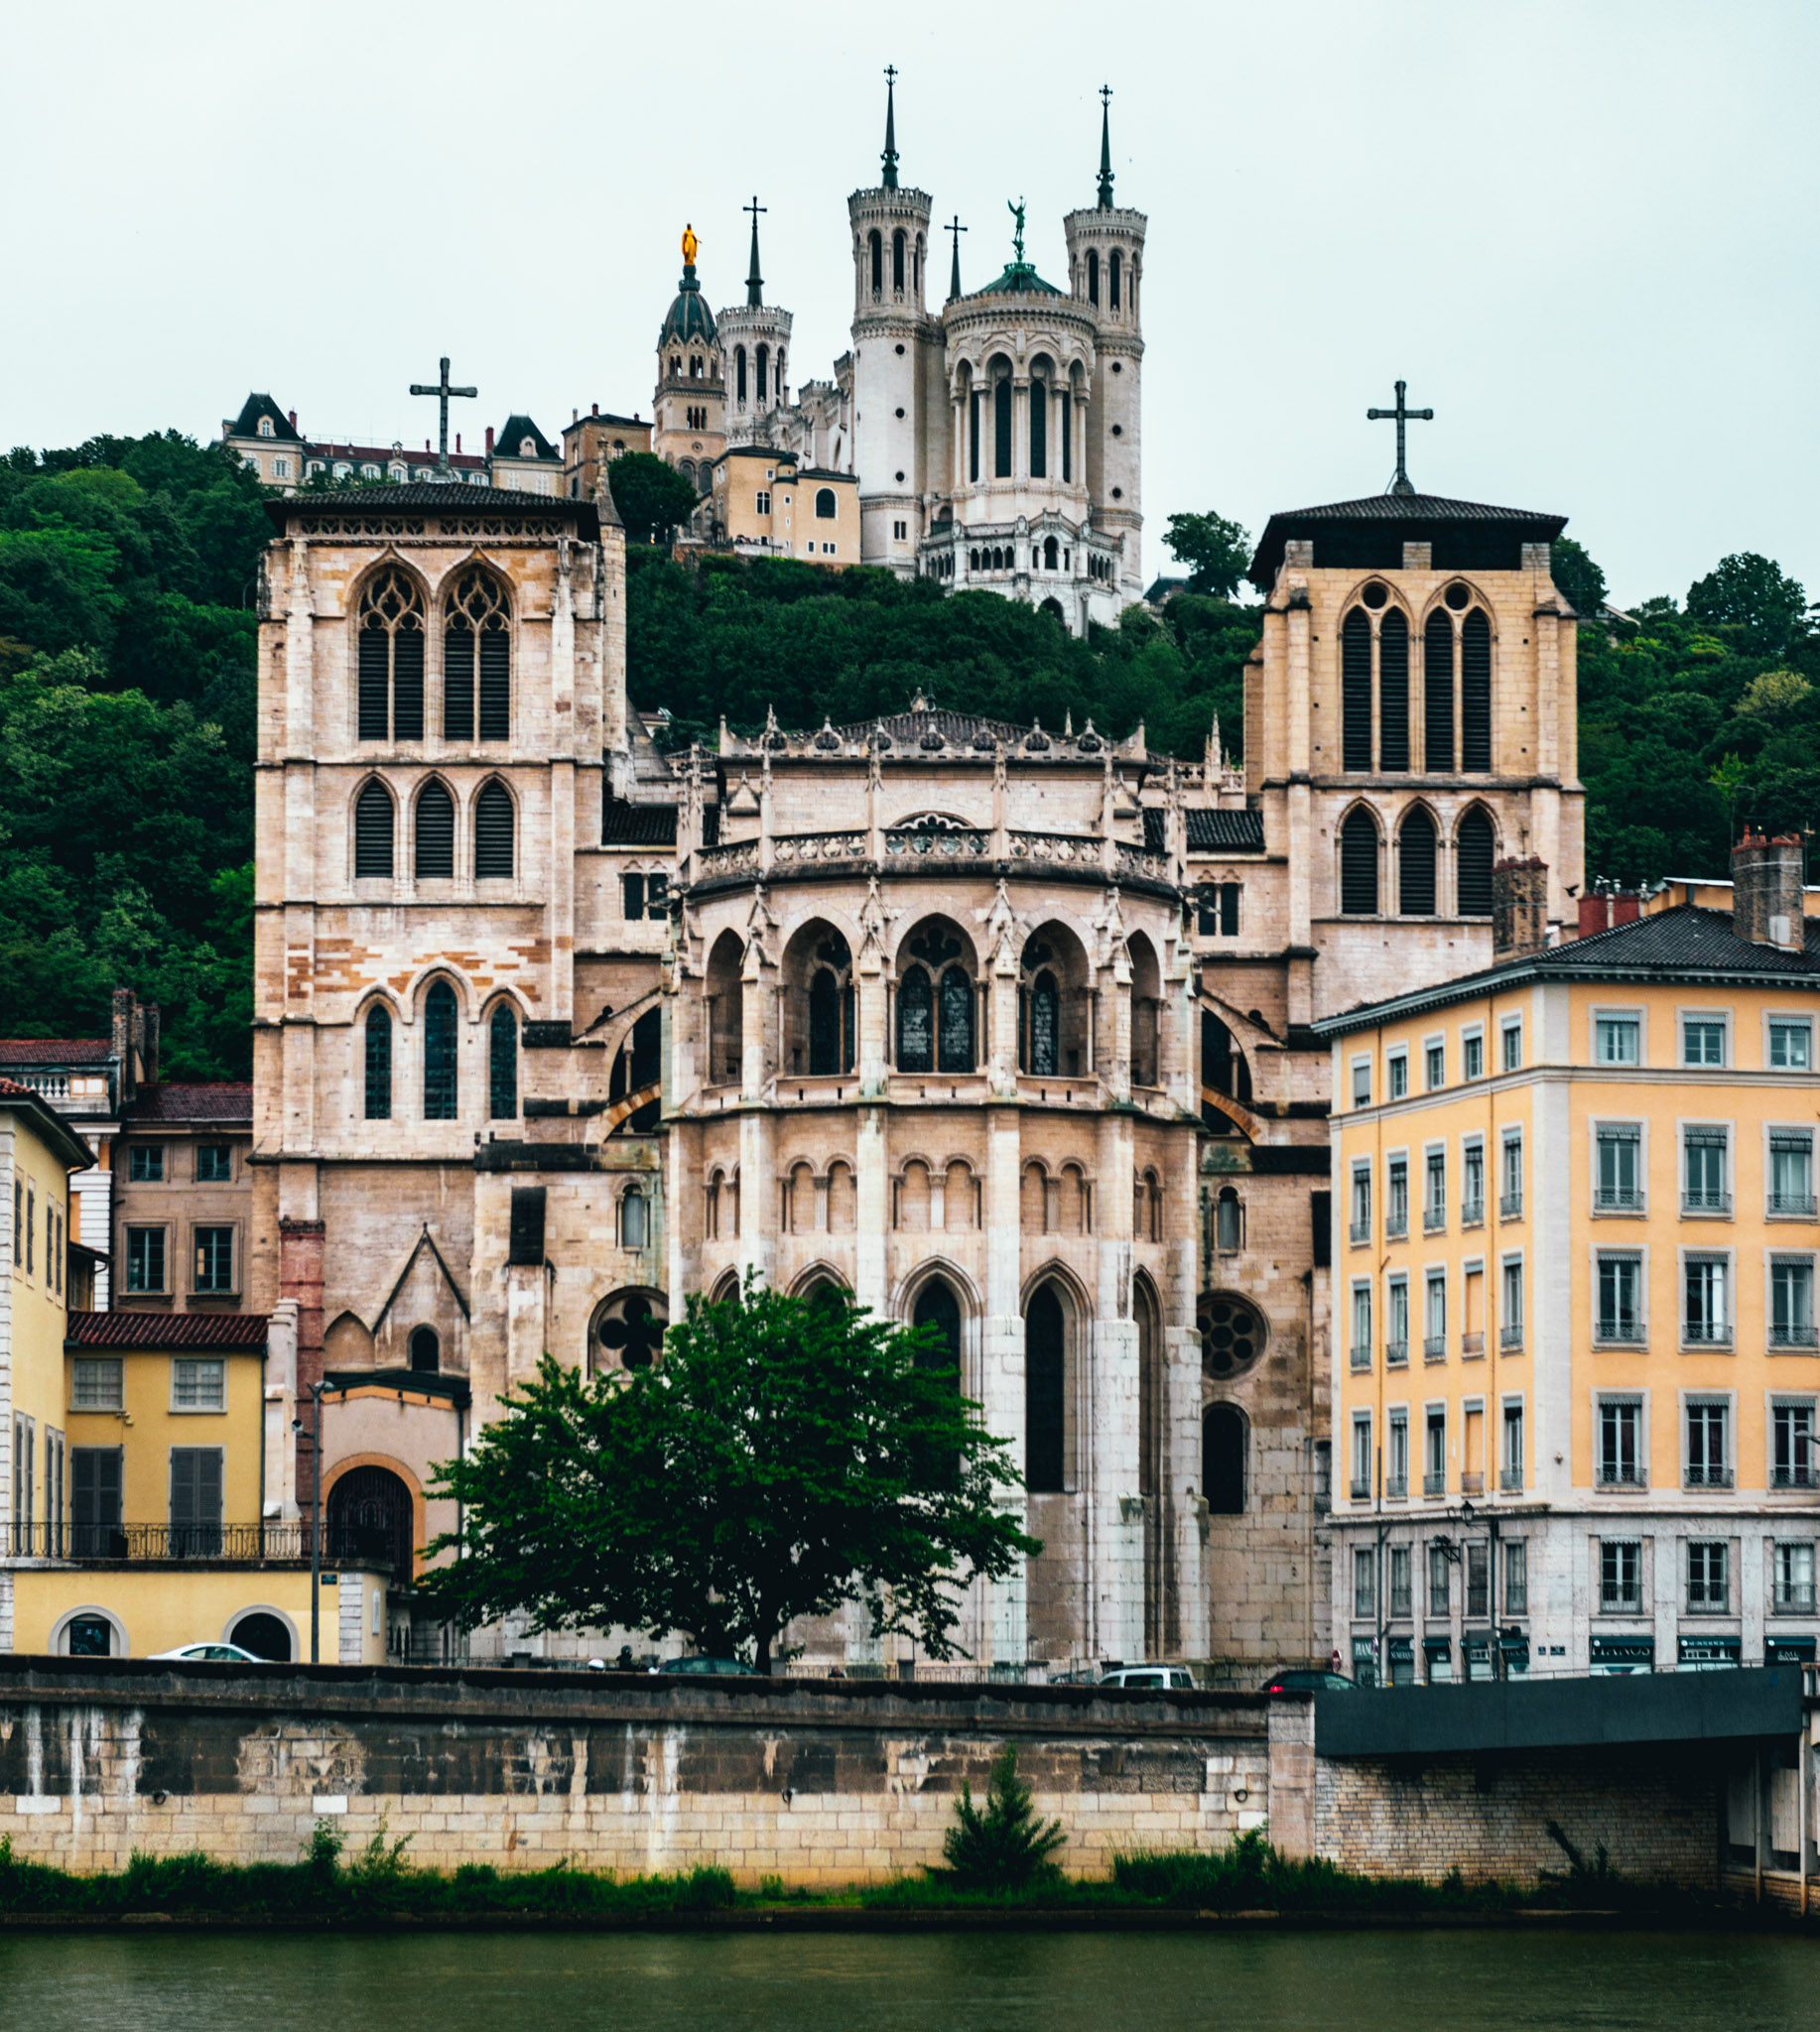 France : Lyon : Cathedrale Saint-Jean-Baptiste (foreground) and La Basilique Notre Dame de Fourviere (background)